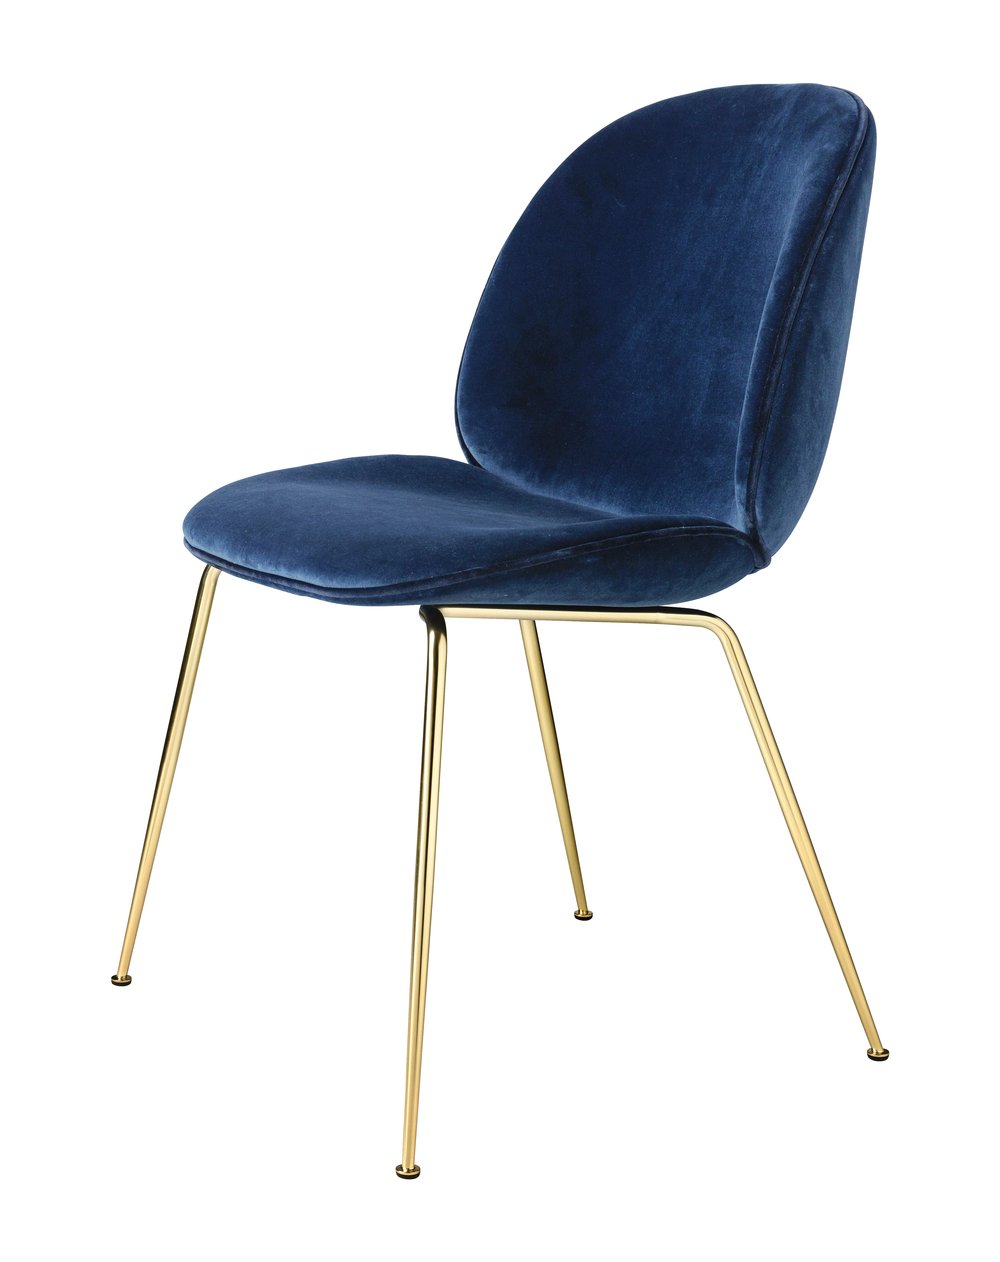 Beetle Chair_Brass_Velluto di Cotone G075-420_Front.jpg